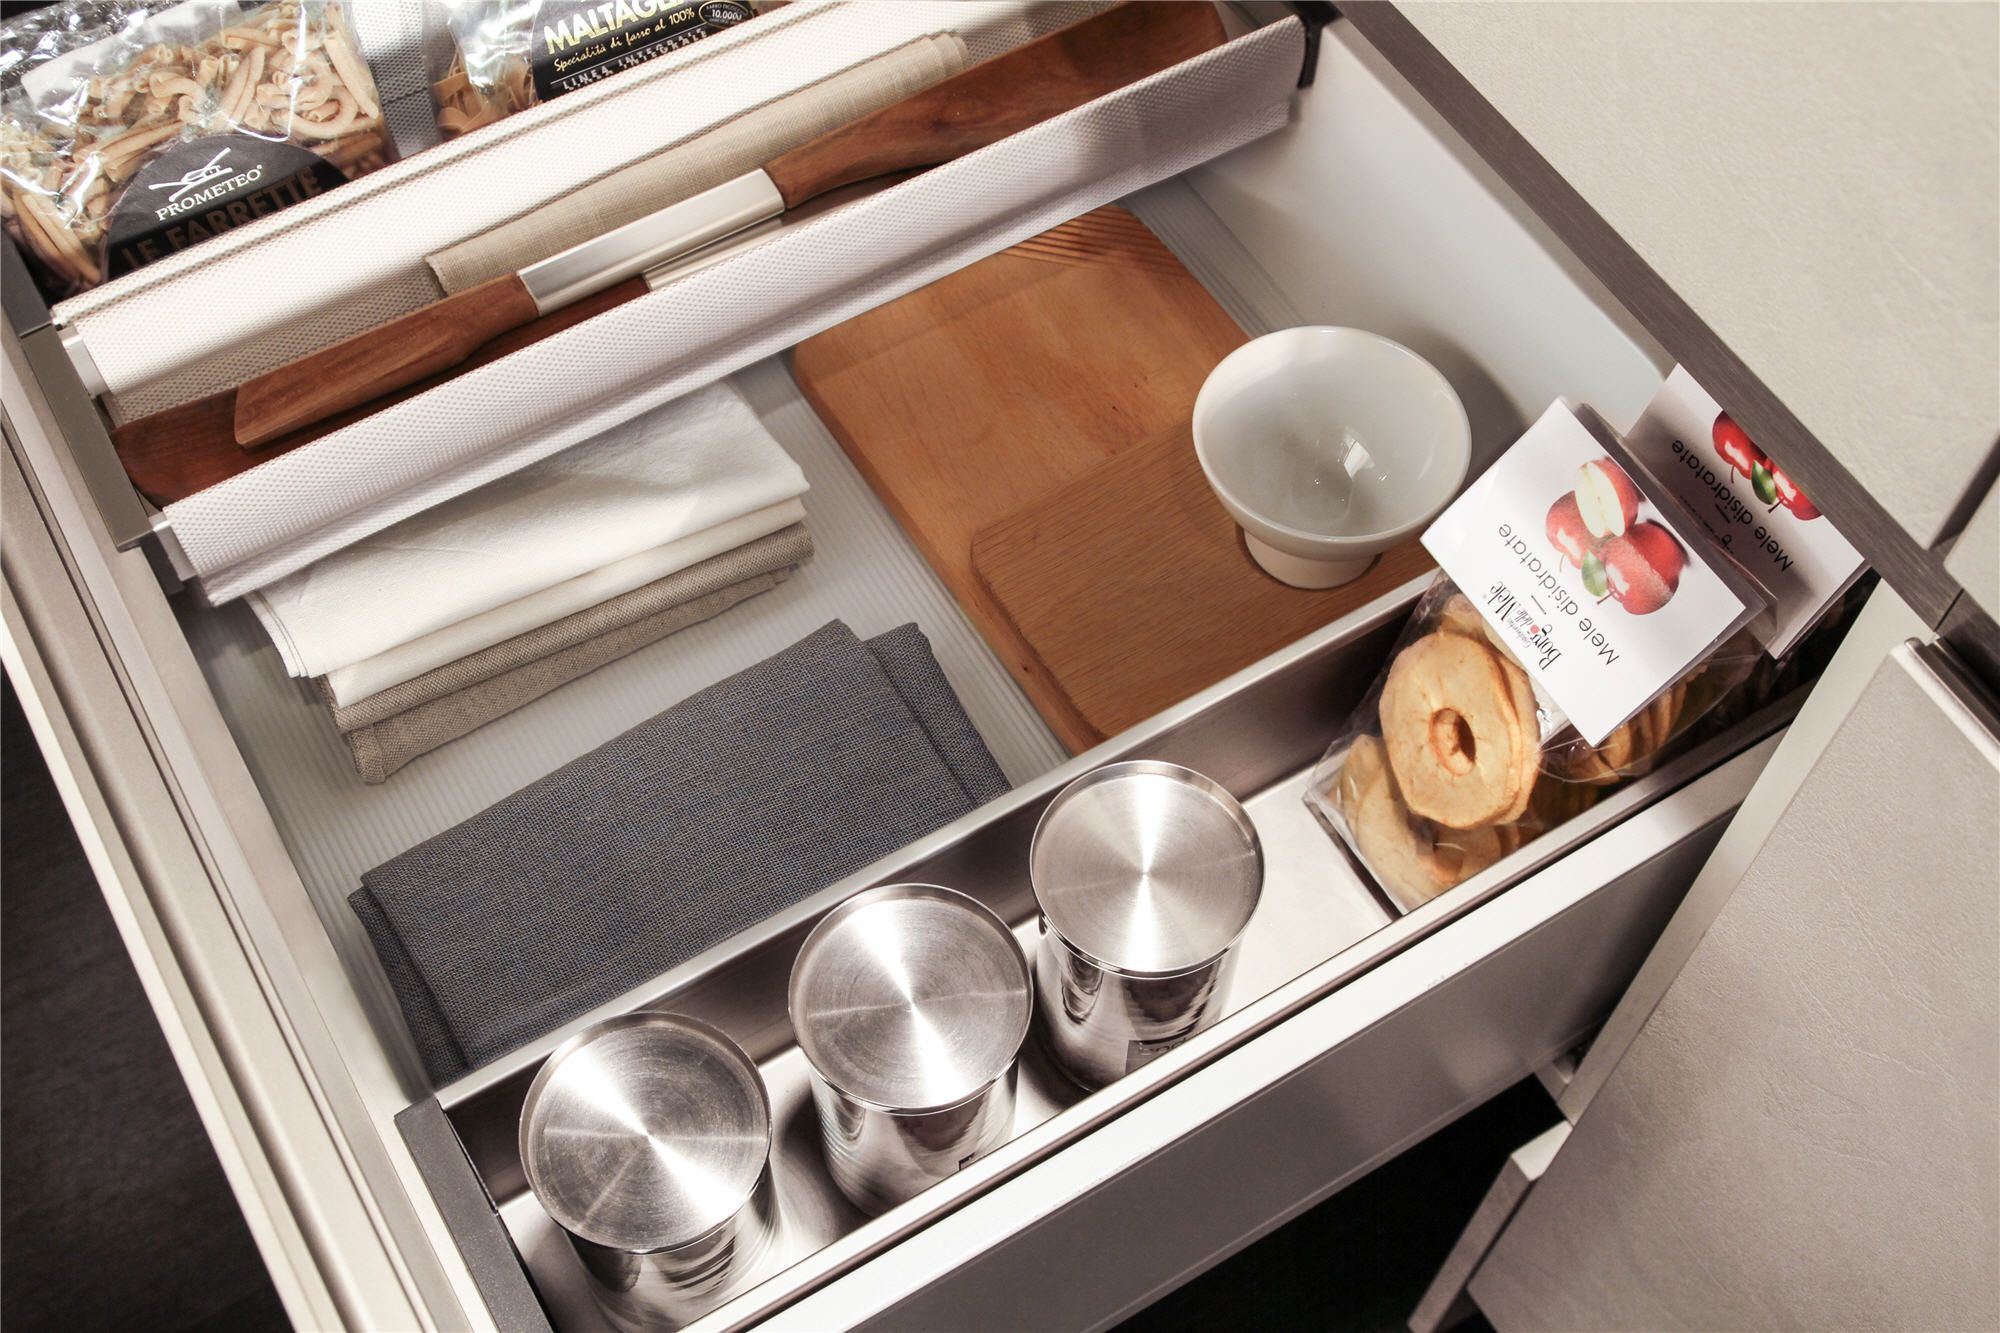 kitchen utensil for record drawers old wine hardware best shelf pull slide cupboard shelving charming decoration out wonderful cabinet size cabinets shelves organizers file closet indispensable of full insert dividers drawer home inserts sliding creative pot trays roll units locking organizer